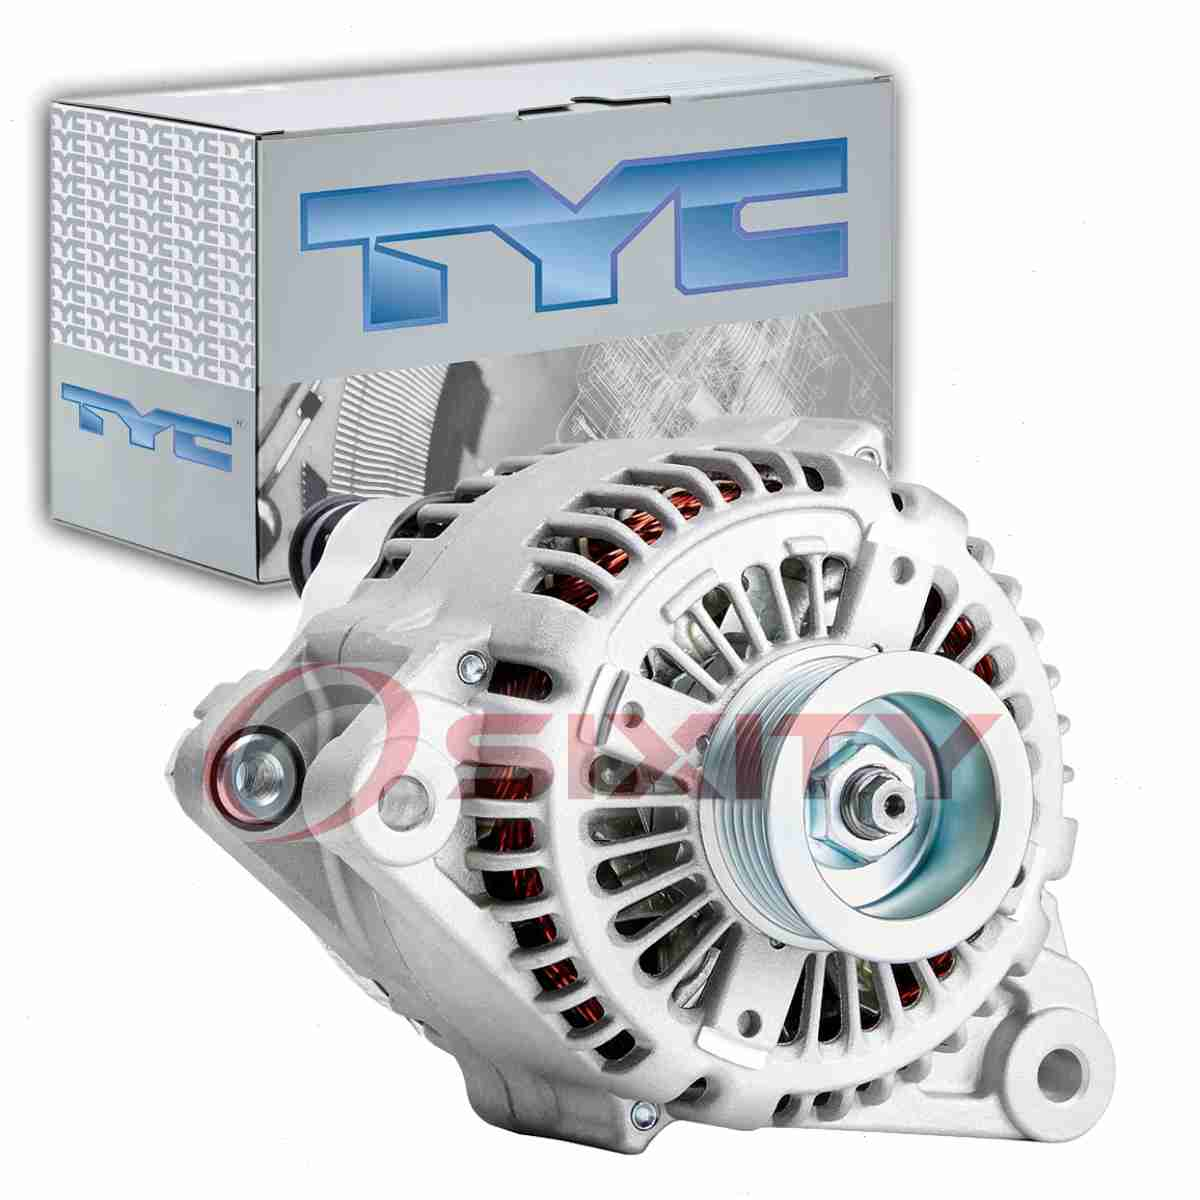 TYC Alternator for 2007-2009 Hyundai Santa Fe 3.3L V6 yb